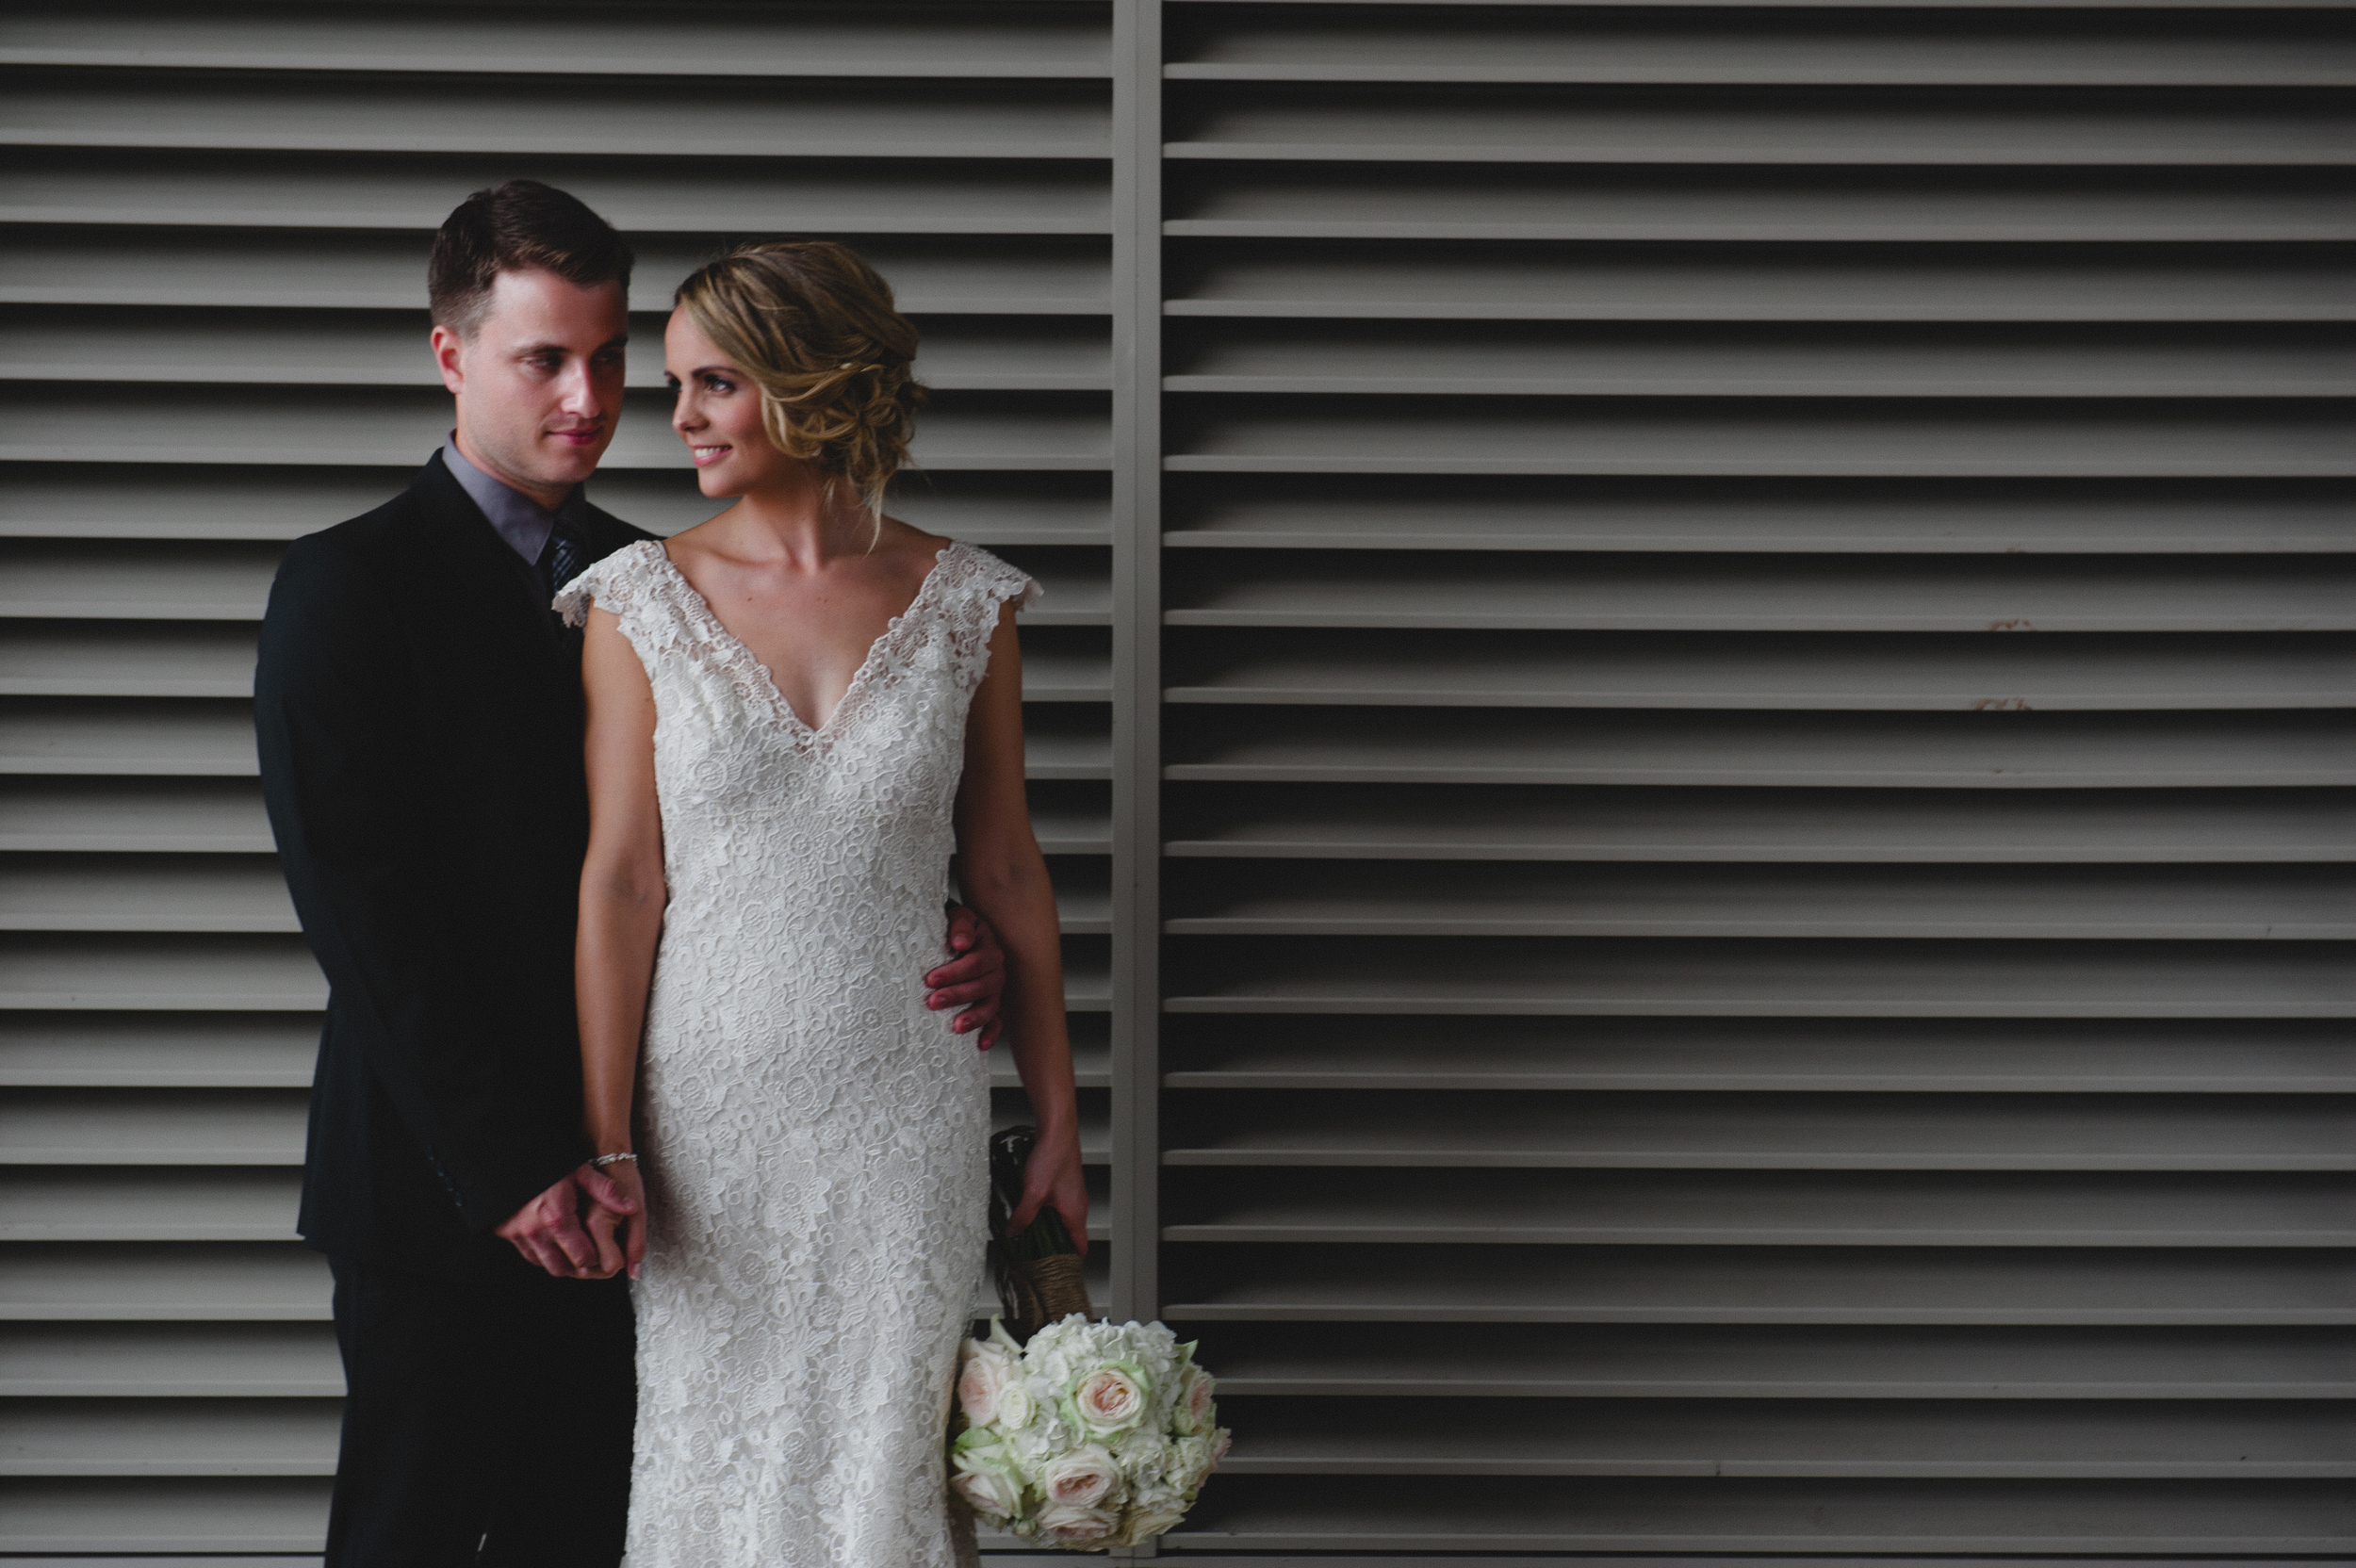 Rustic Chic Weddings   Courtney and Mark